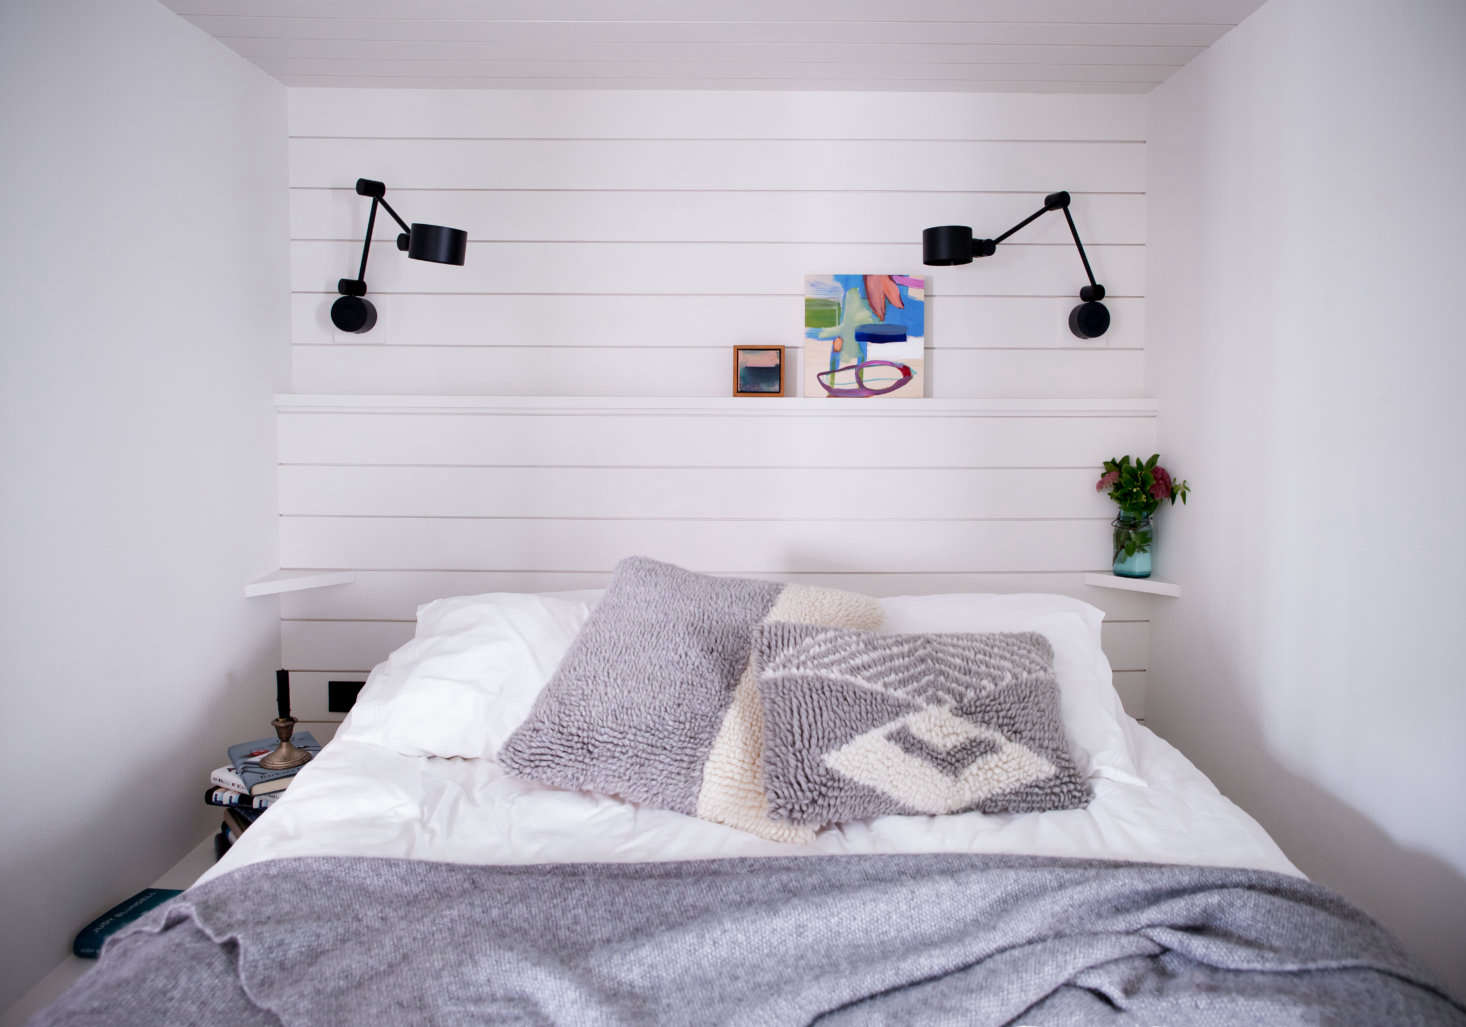 Nestled in a small nook, the studio bedroom feels like a ship&#8